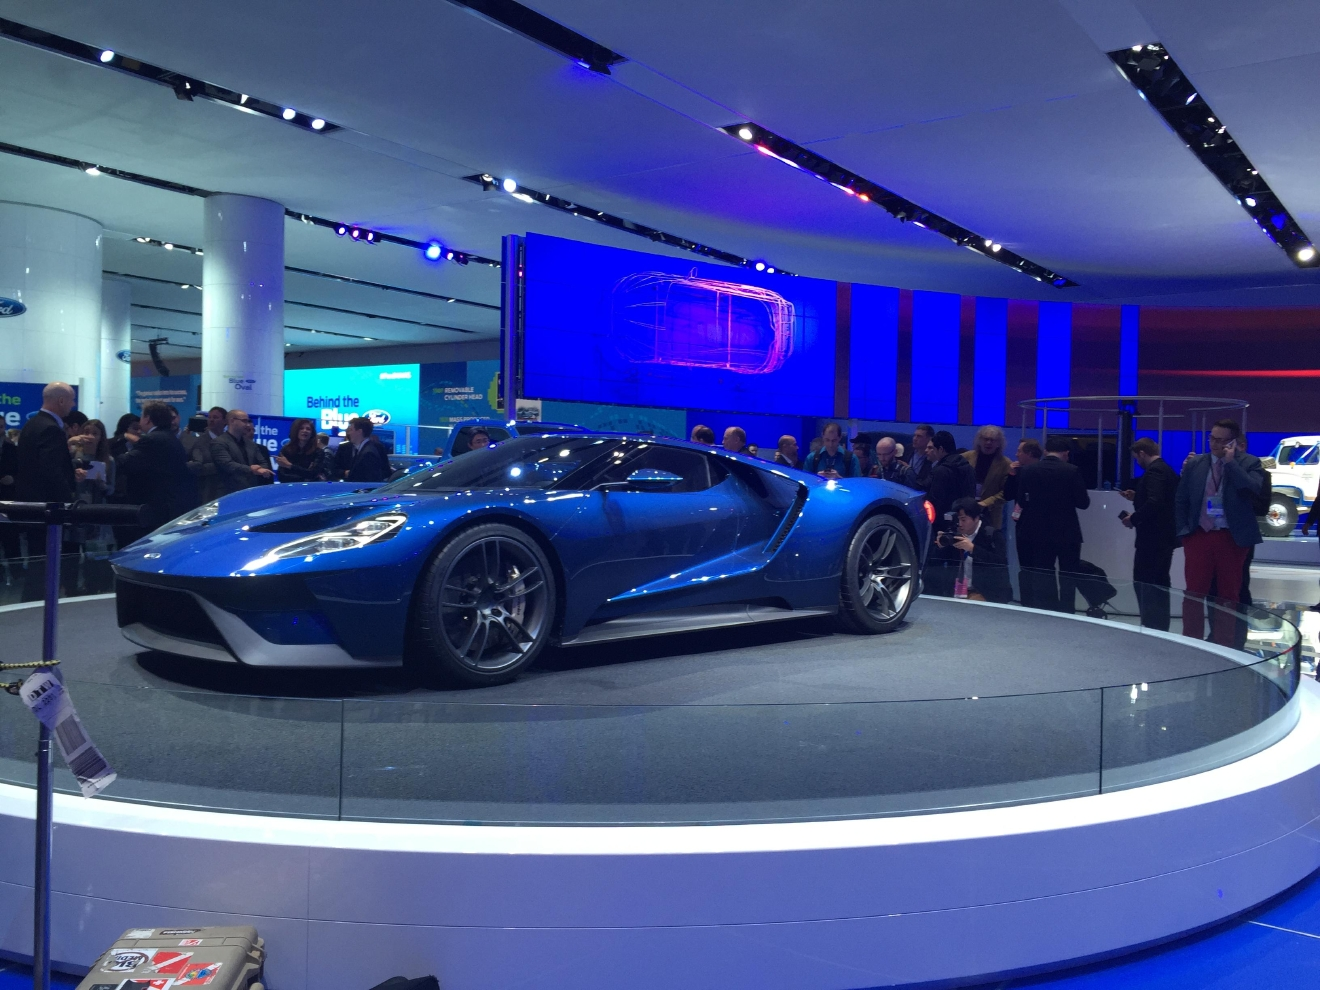 ford gt on display at the 2015 north american international auto show where it was